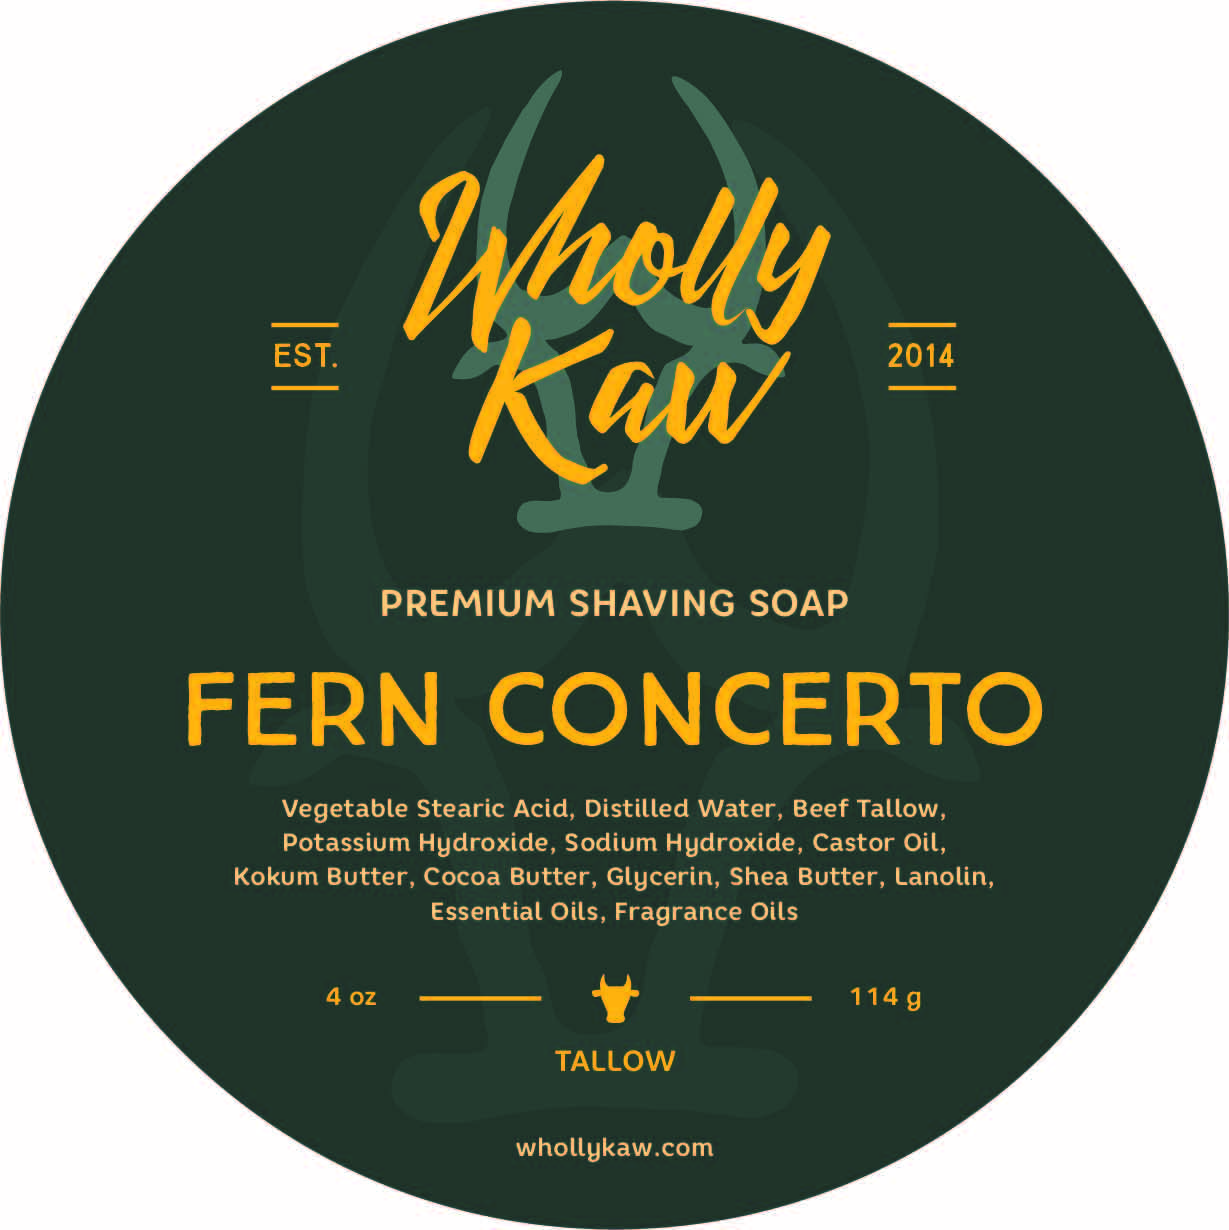 Wholly Kaw - Fern Concerto - Soap image